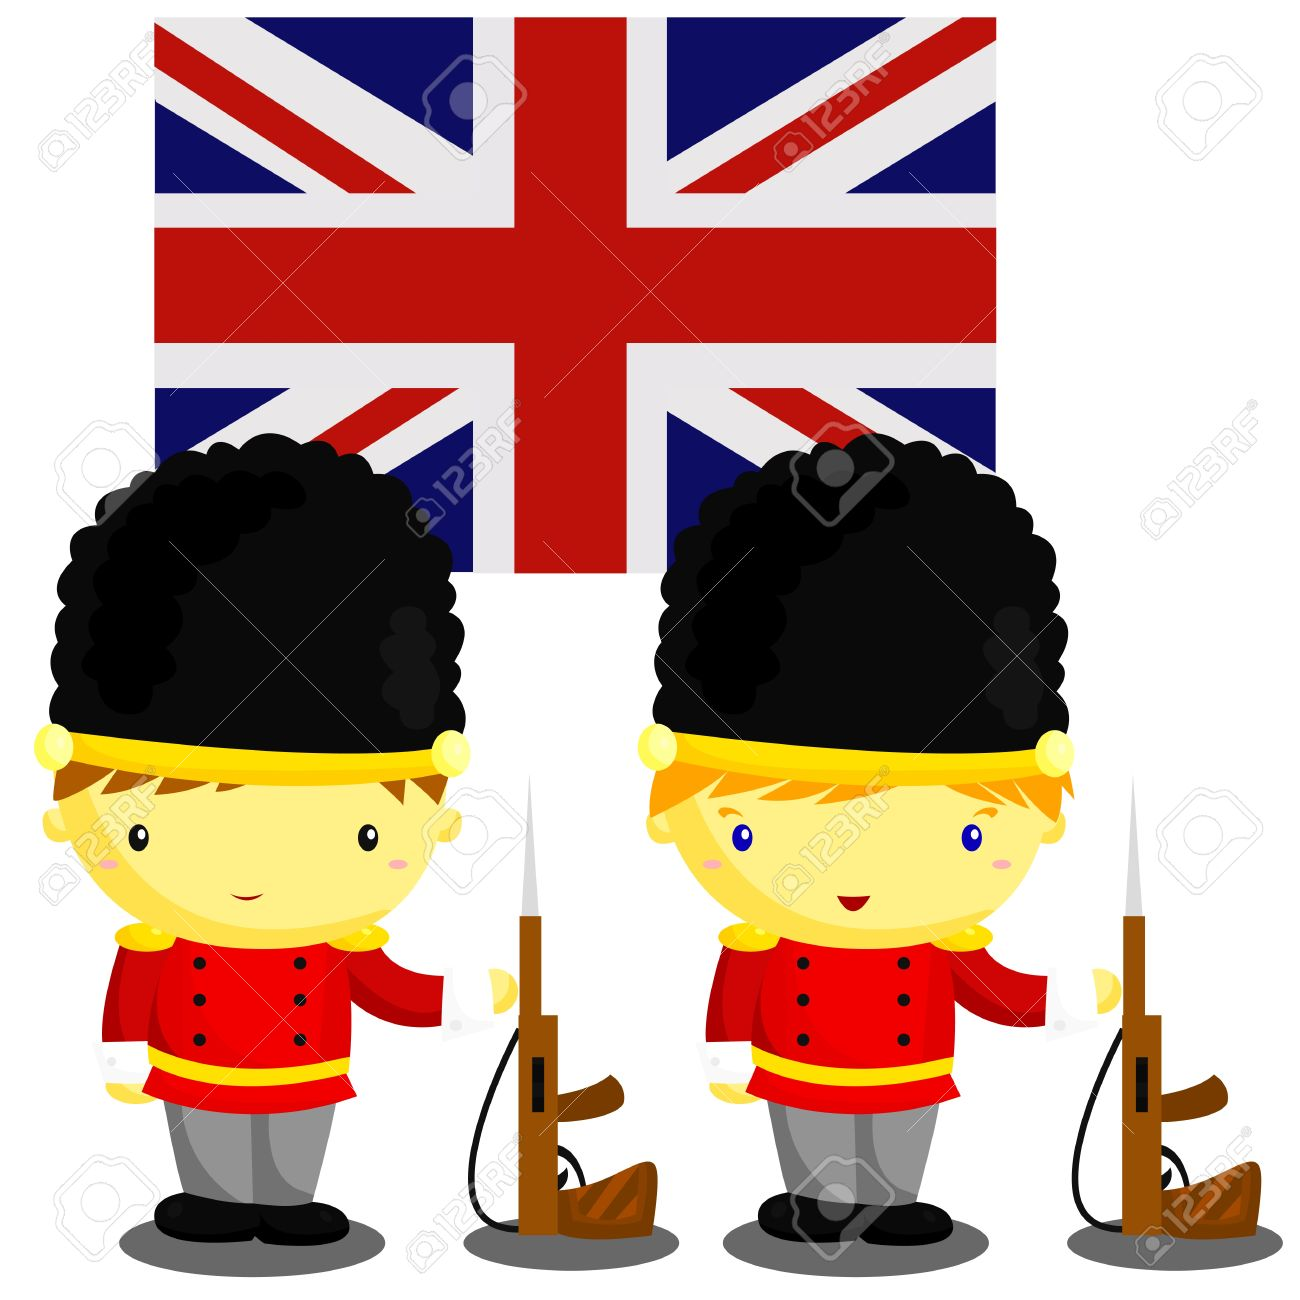 British soldiers clipart.